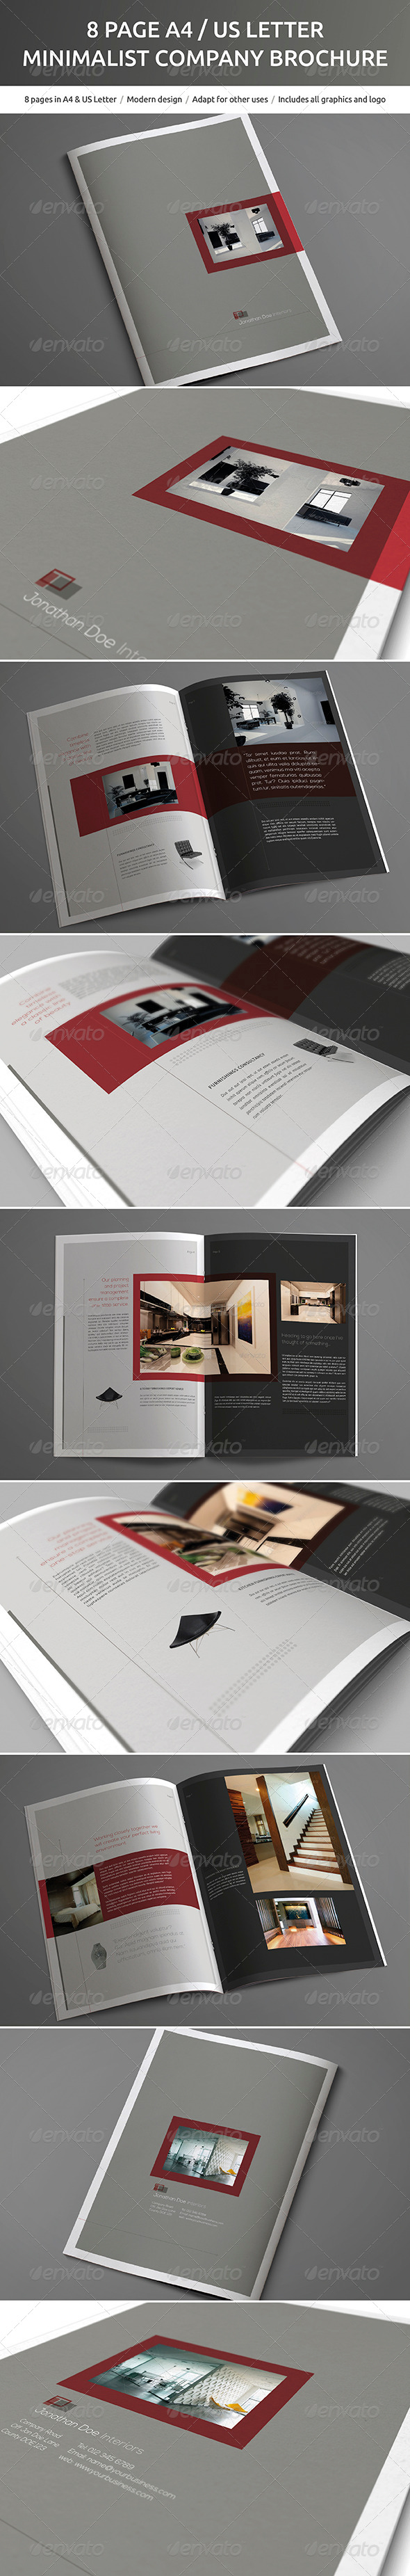 GraphicRiver 8 Page A4 and US Letter Minimalist Brochure 5181057